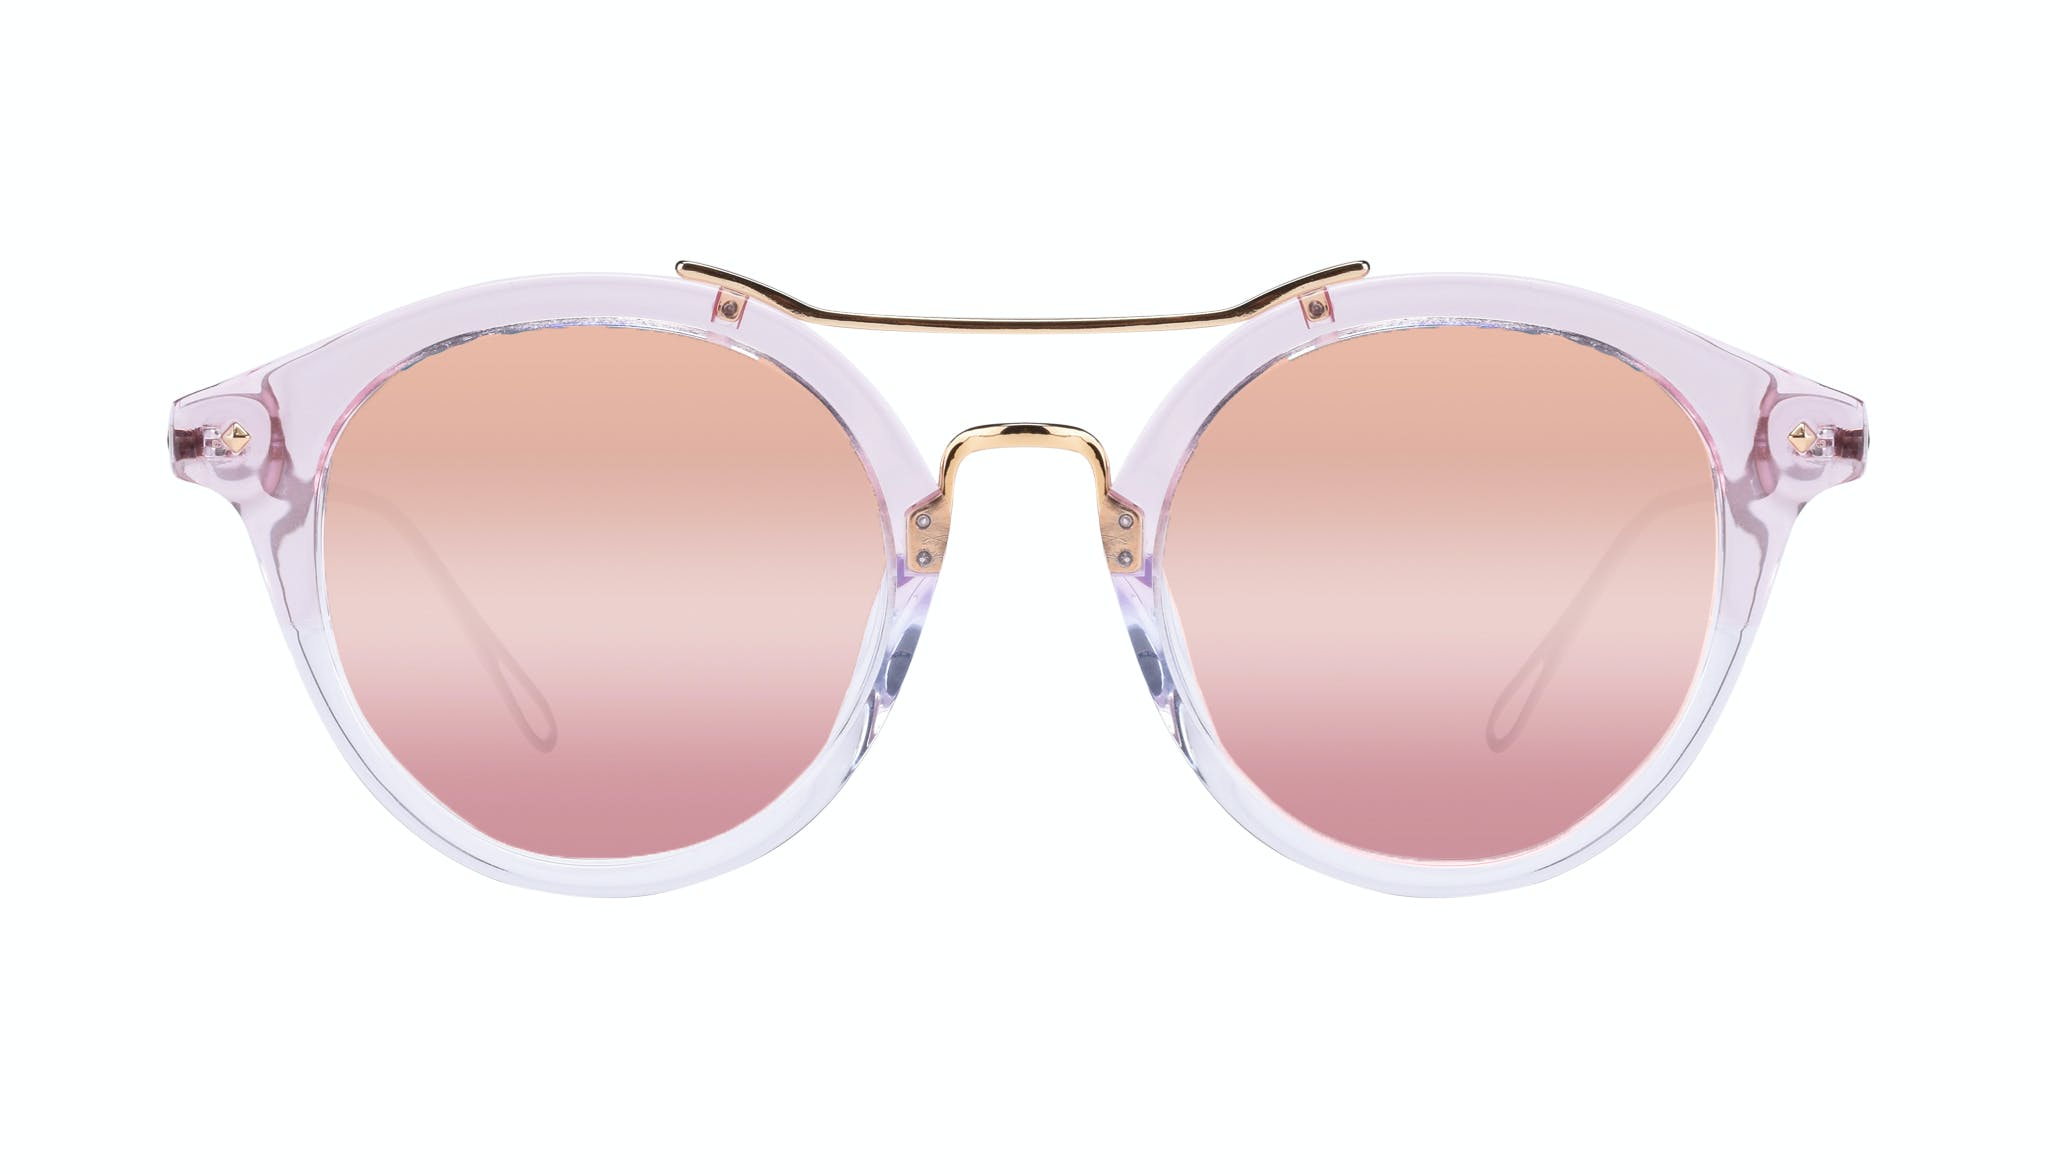 Affordable Fashion Glasses Round Sunglasses Women Infinite Rose